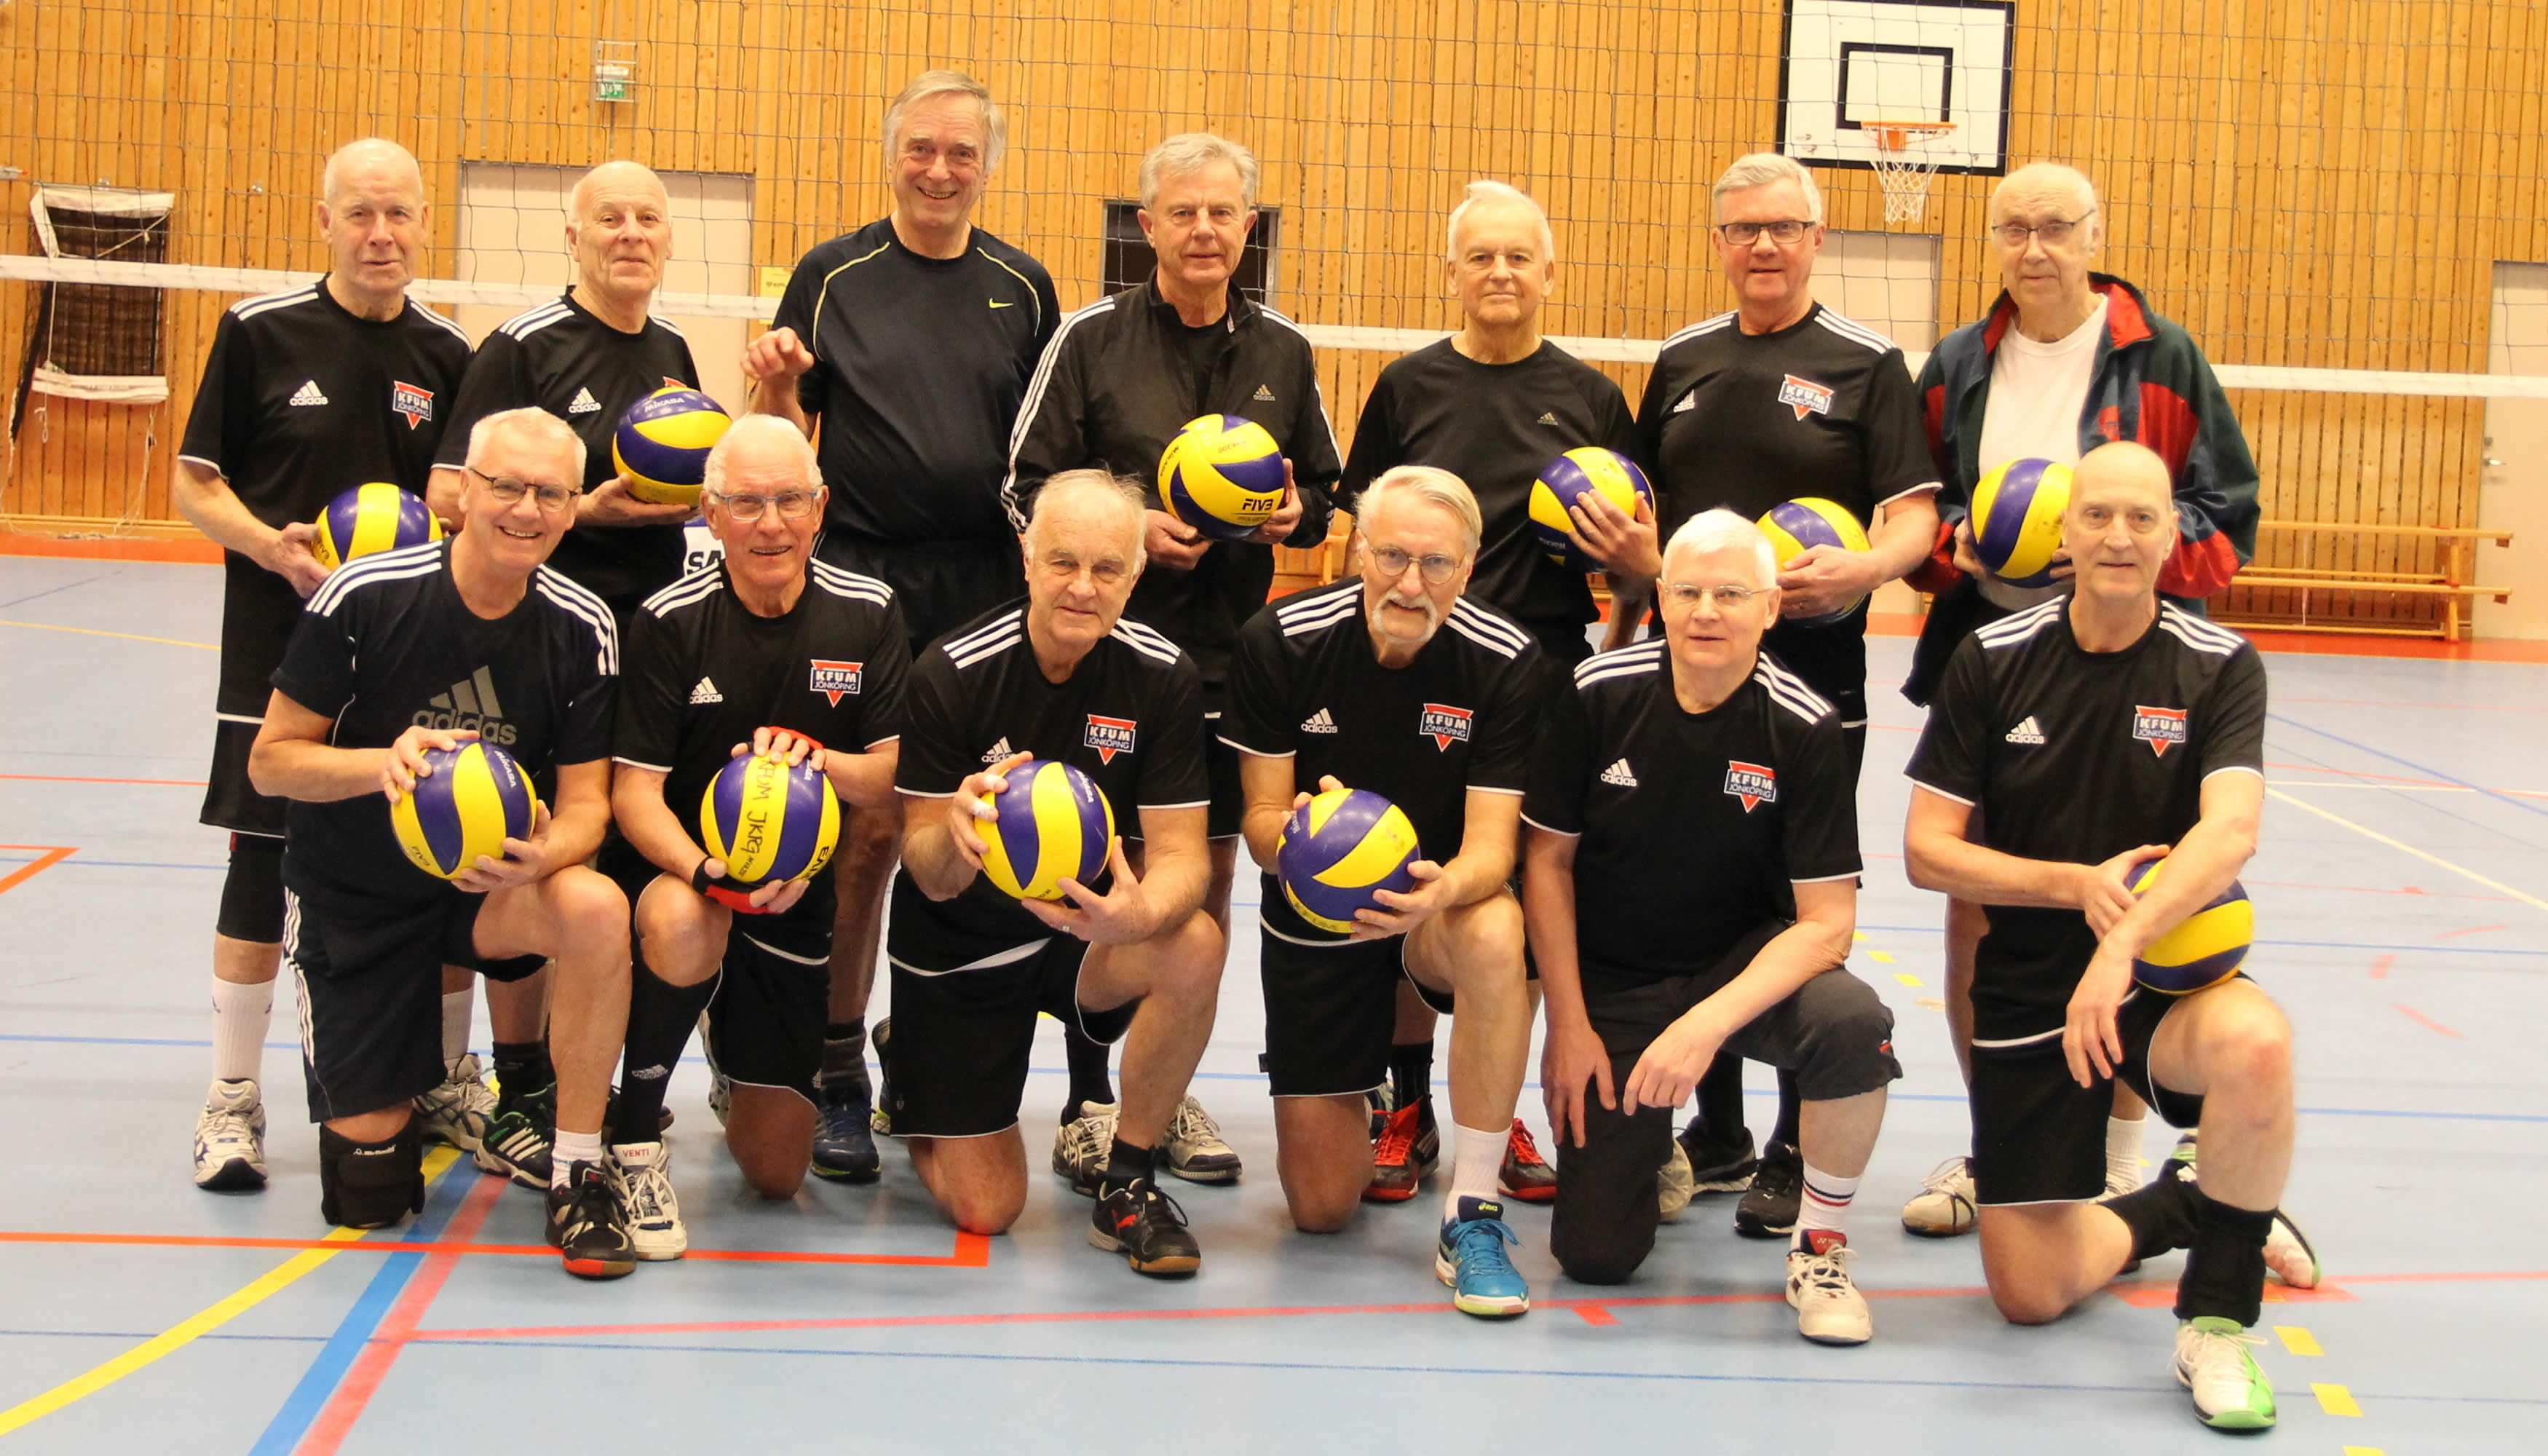 Seniorvolley